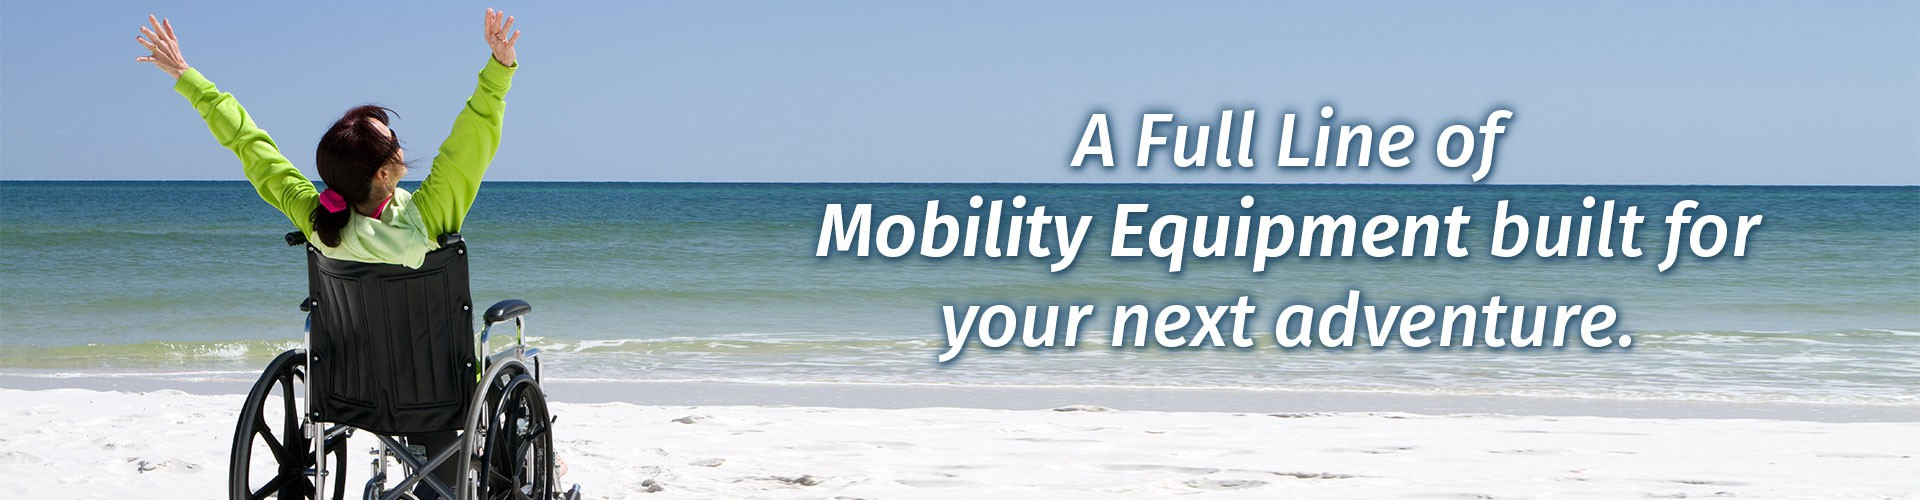 A full line of mobility equipment for your next adventure! Florida